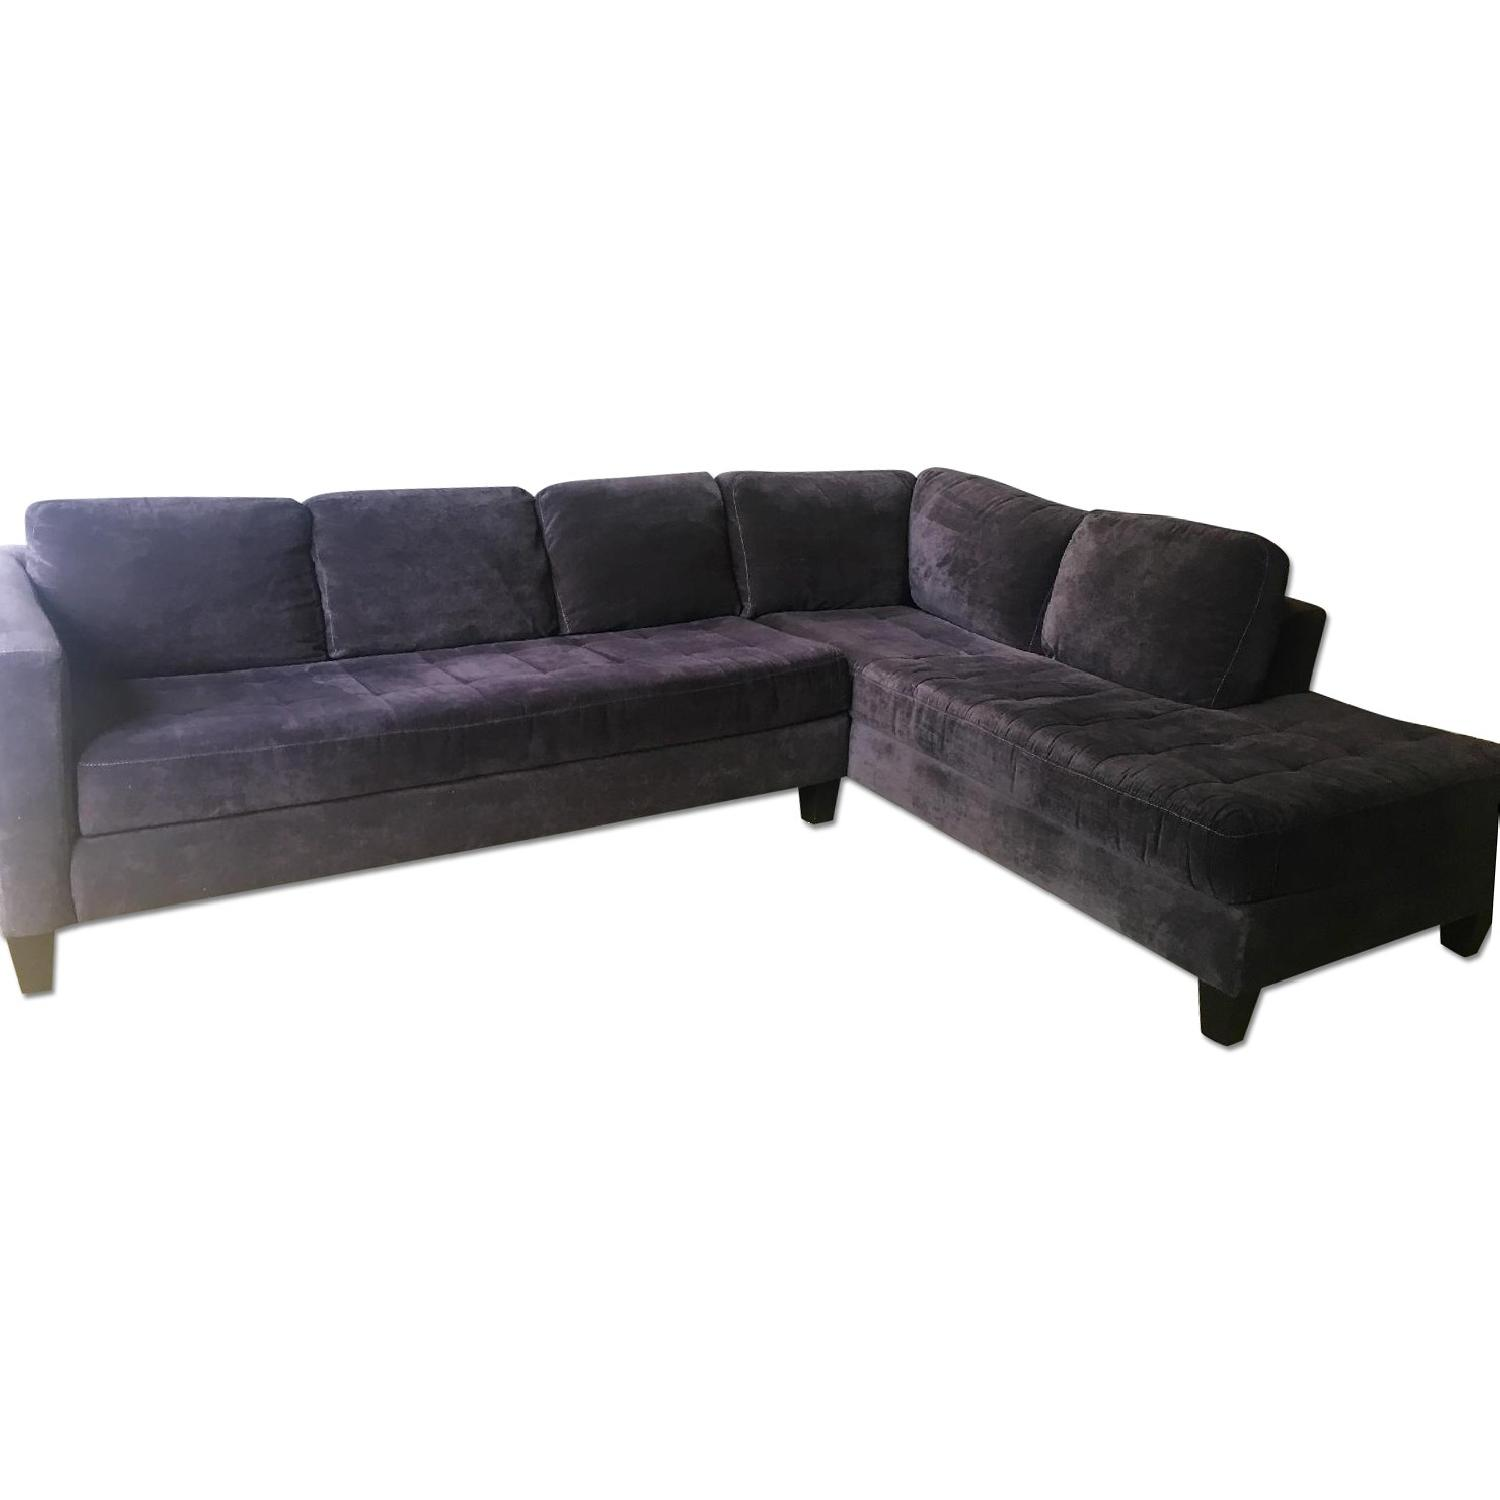 Macy's Large Charcoal Sectional - image-0